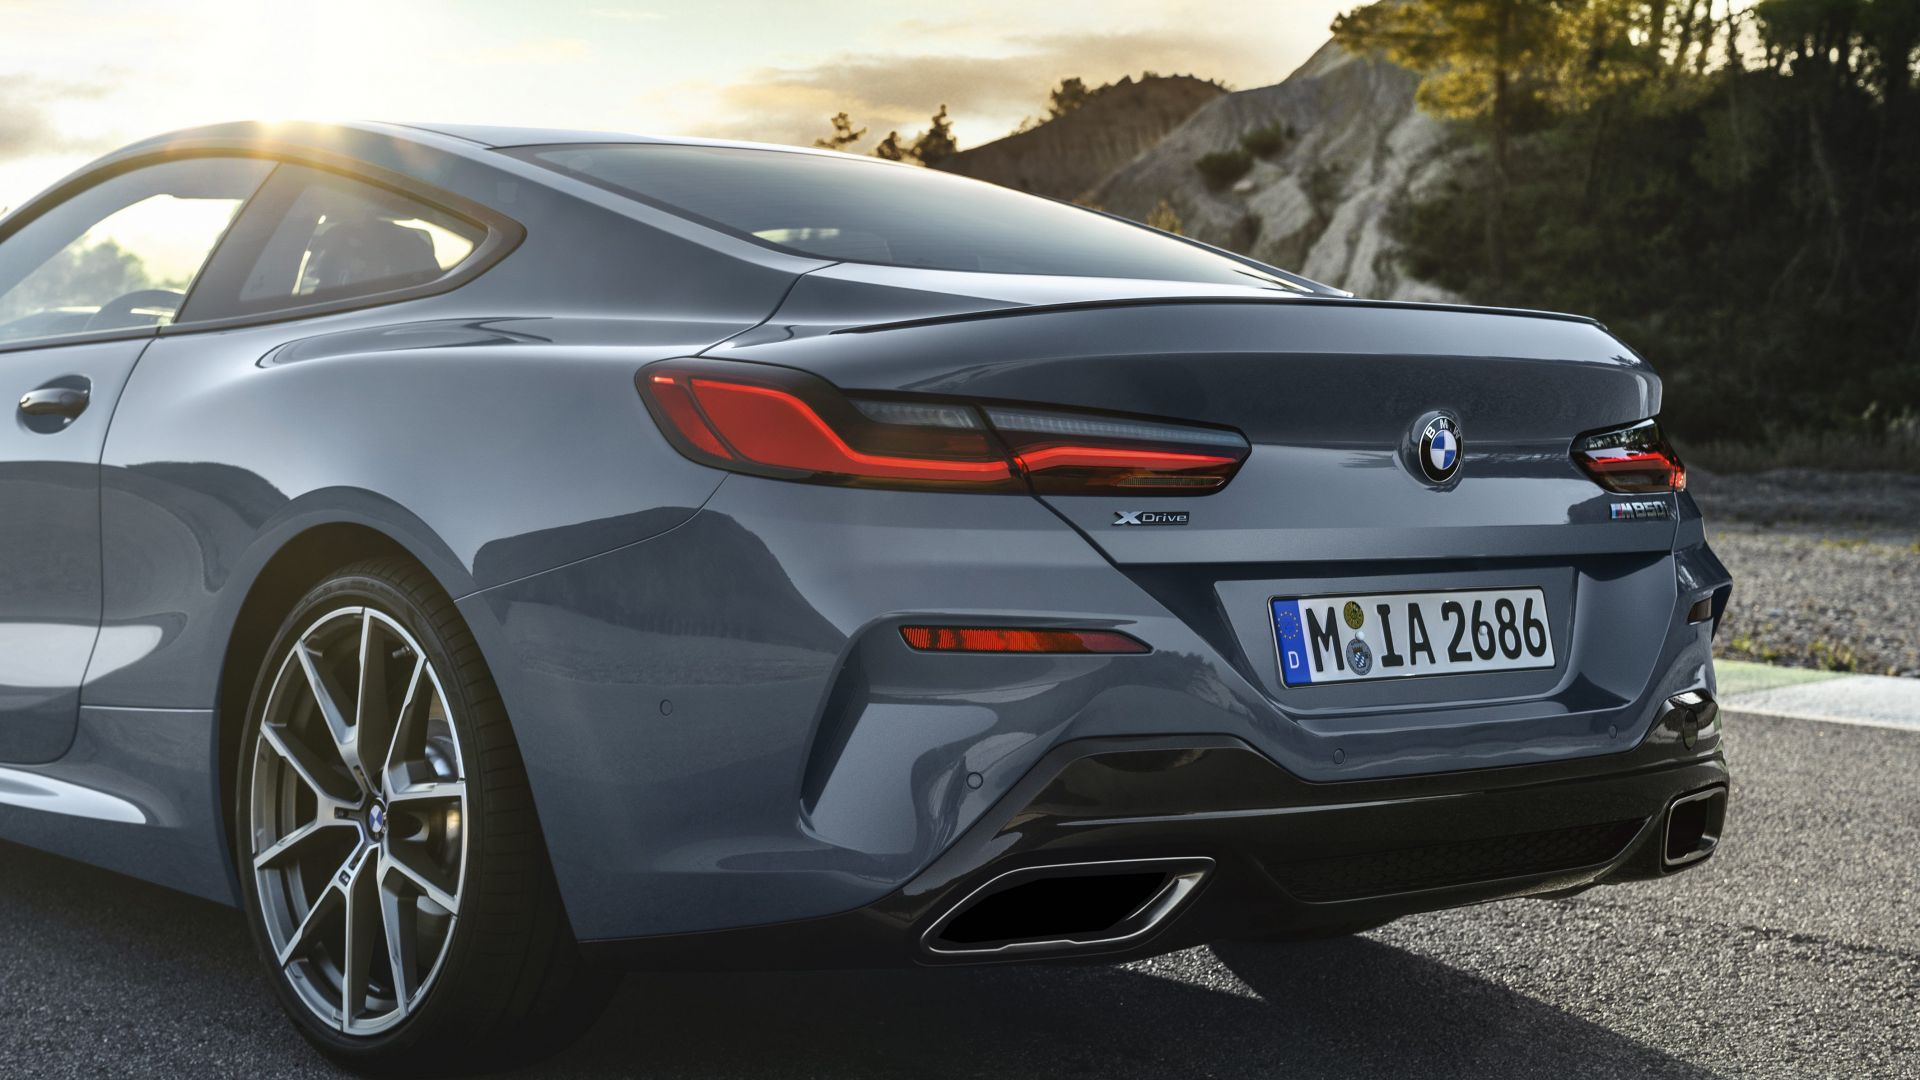 BMW 8-Series Coupe, 2019 Cars, 4K (horizontal)